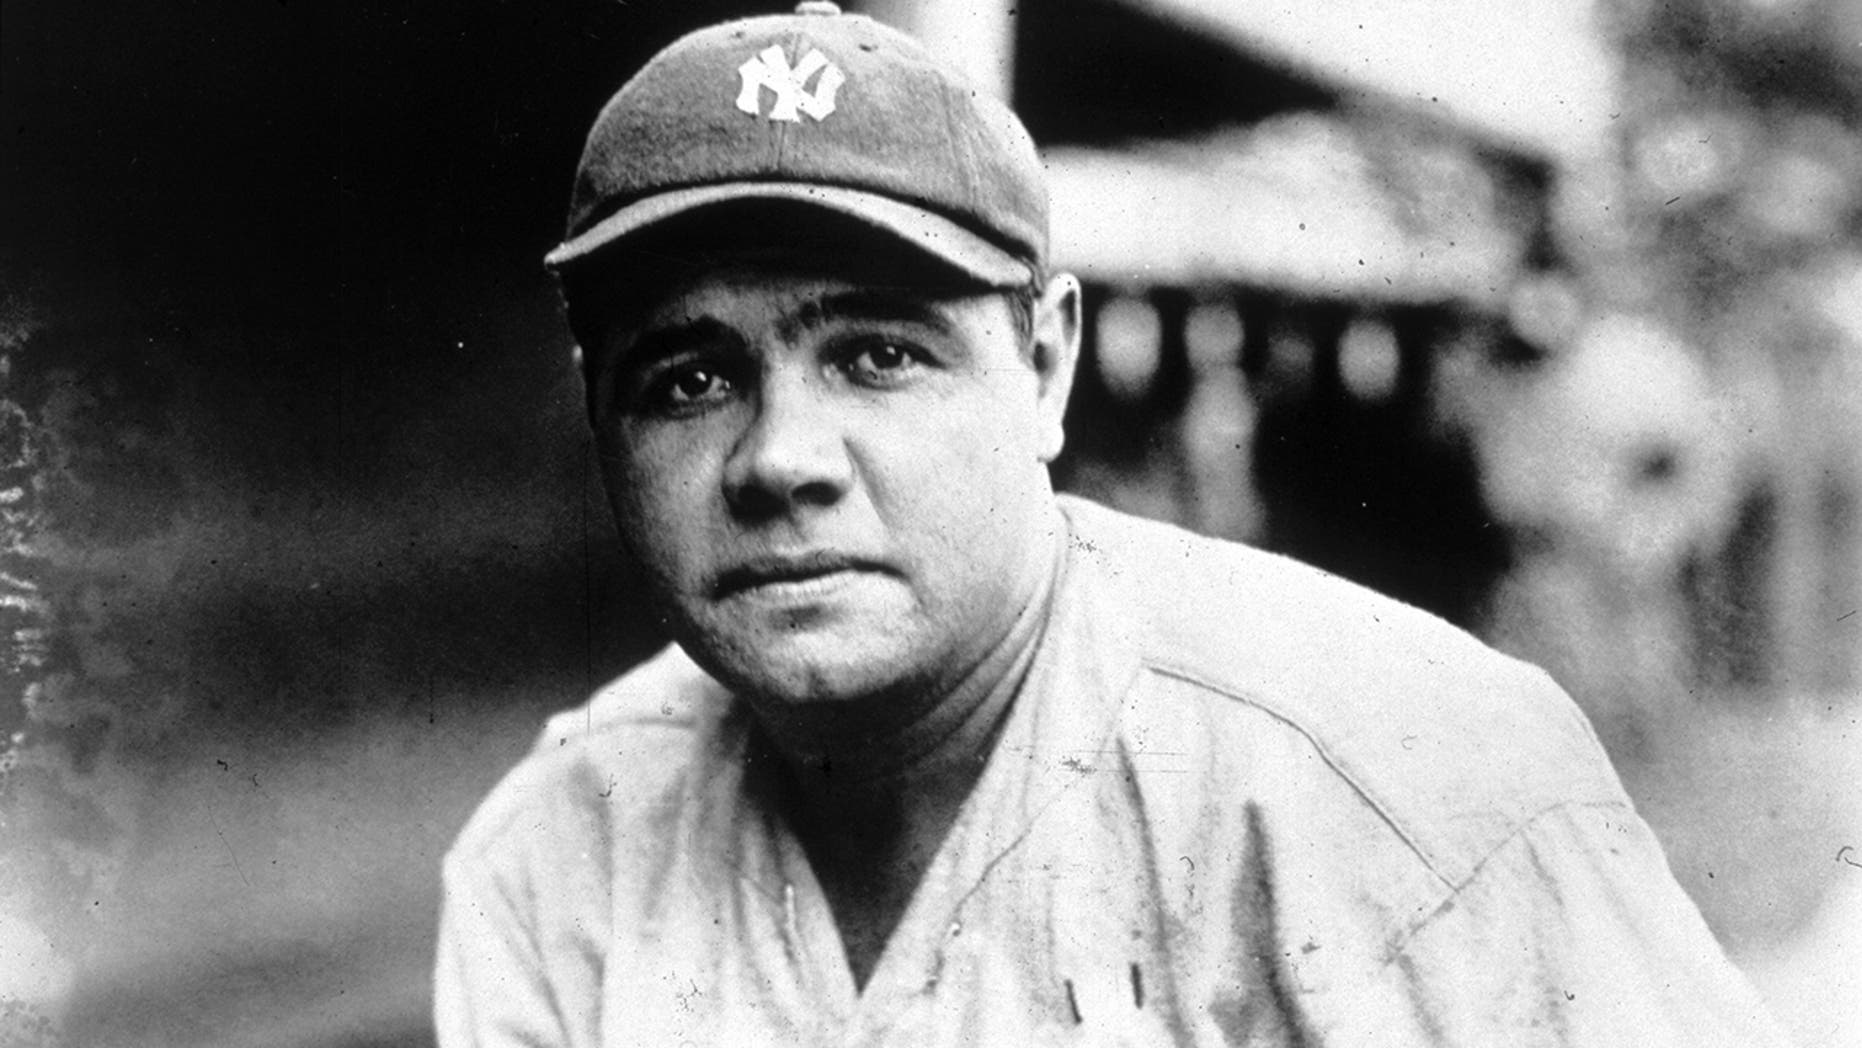 American baseball player George Herman Ruth (1895 - 1948) known as 'Babe' Ruth. (Photo by MPI/Getty Images)